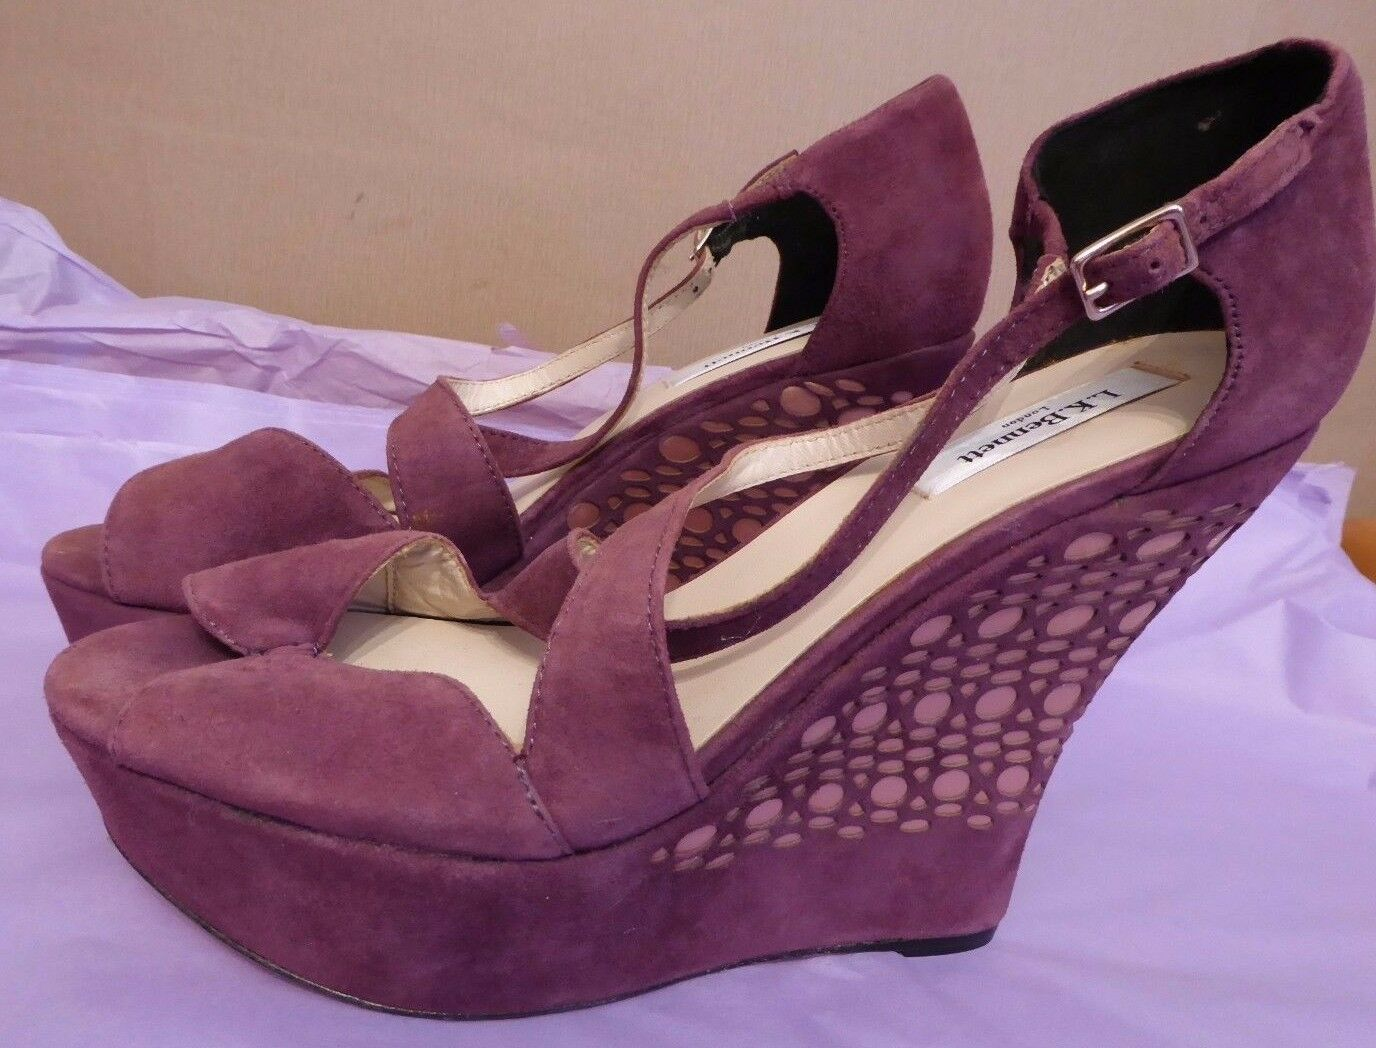 LK Bennett UK8 EU41 US10.5 new Rea purple suede laser cut high wedge sandals